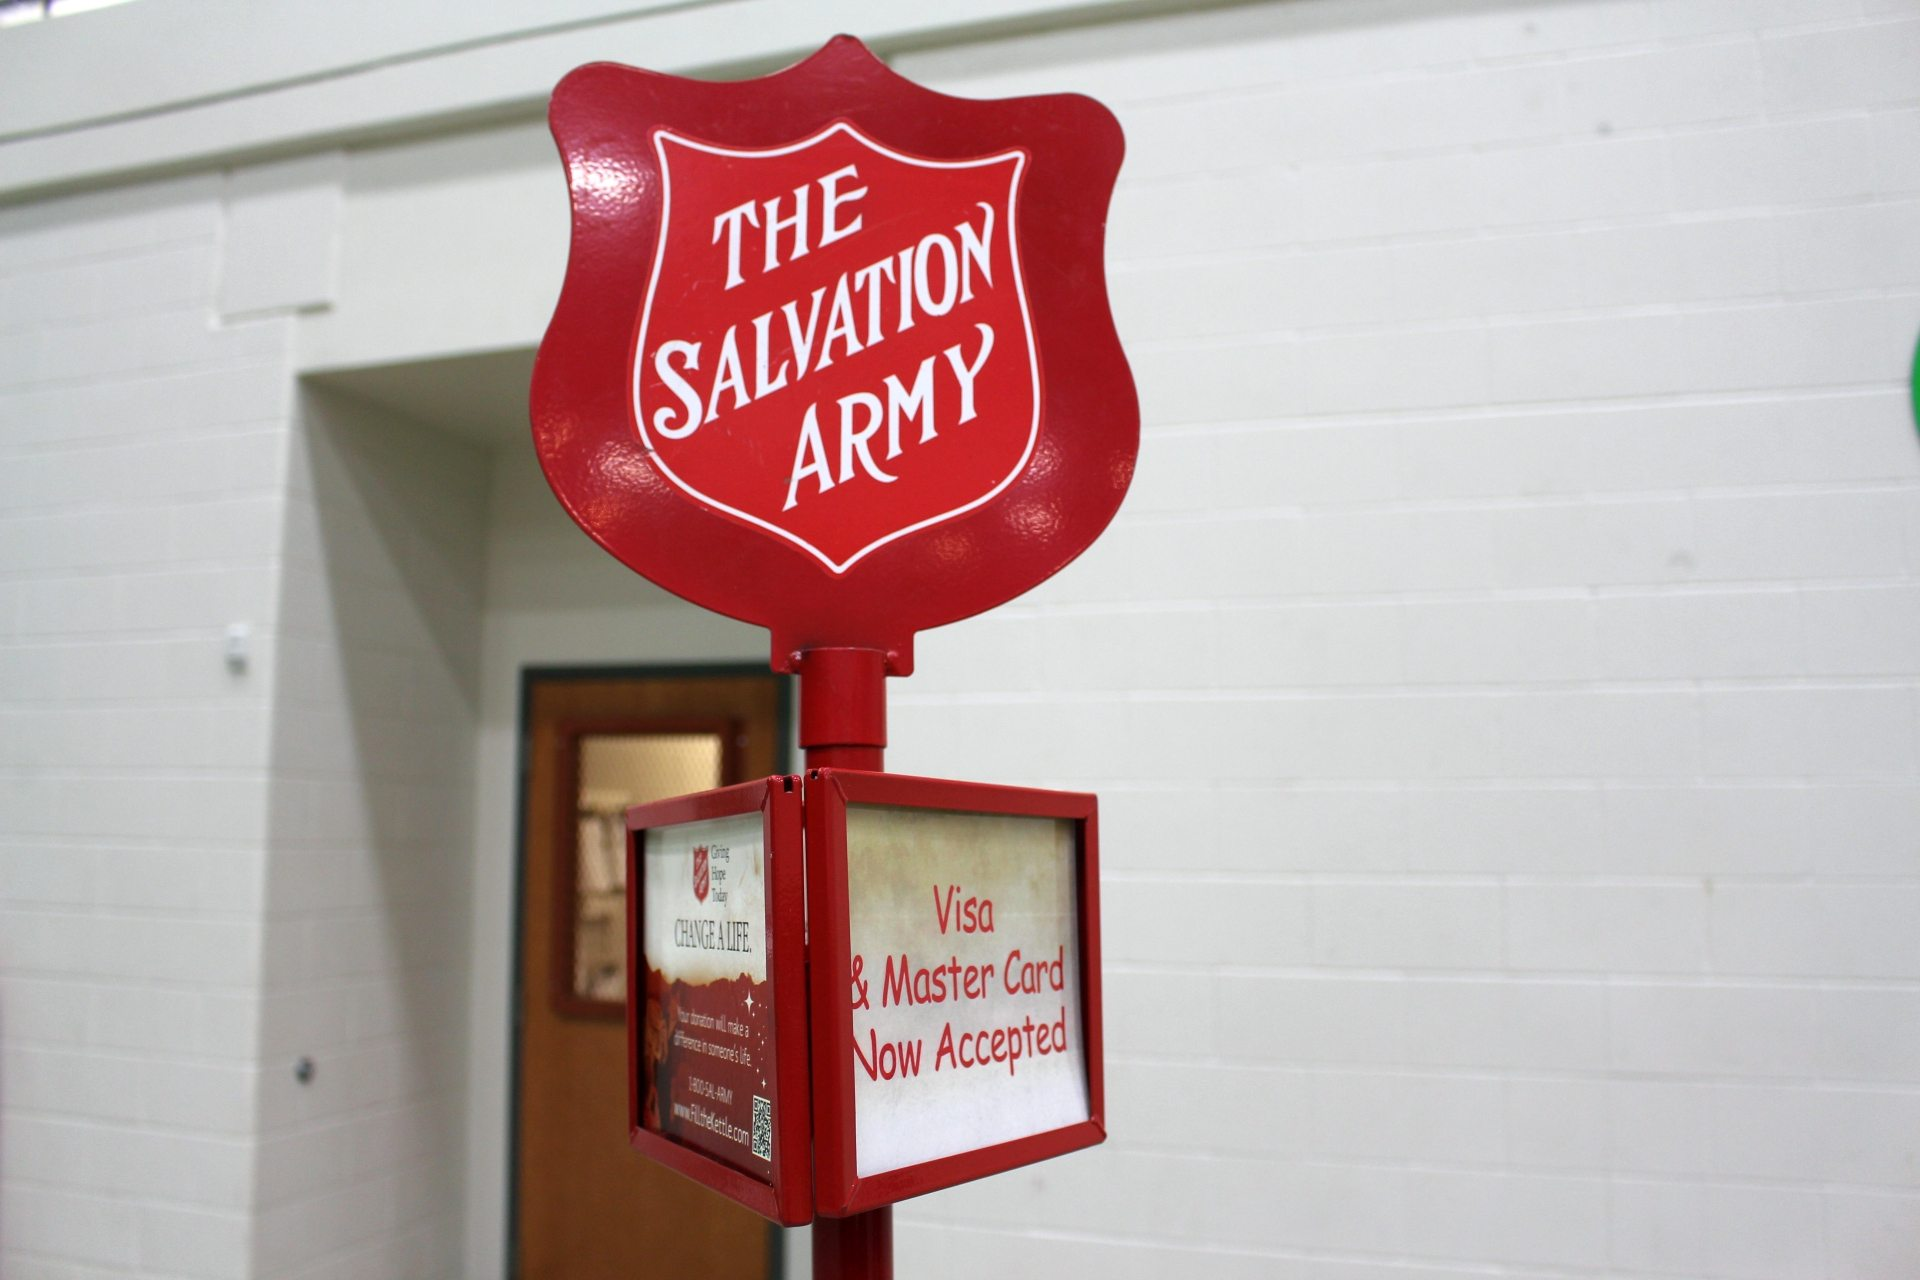 Nanaimo Salvation Army says man trying to dupe people in door-to-door scam